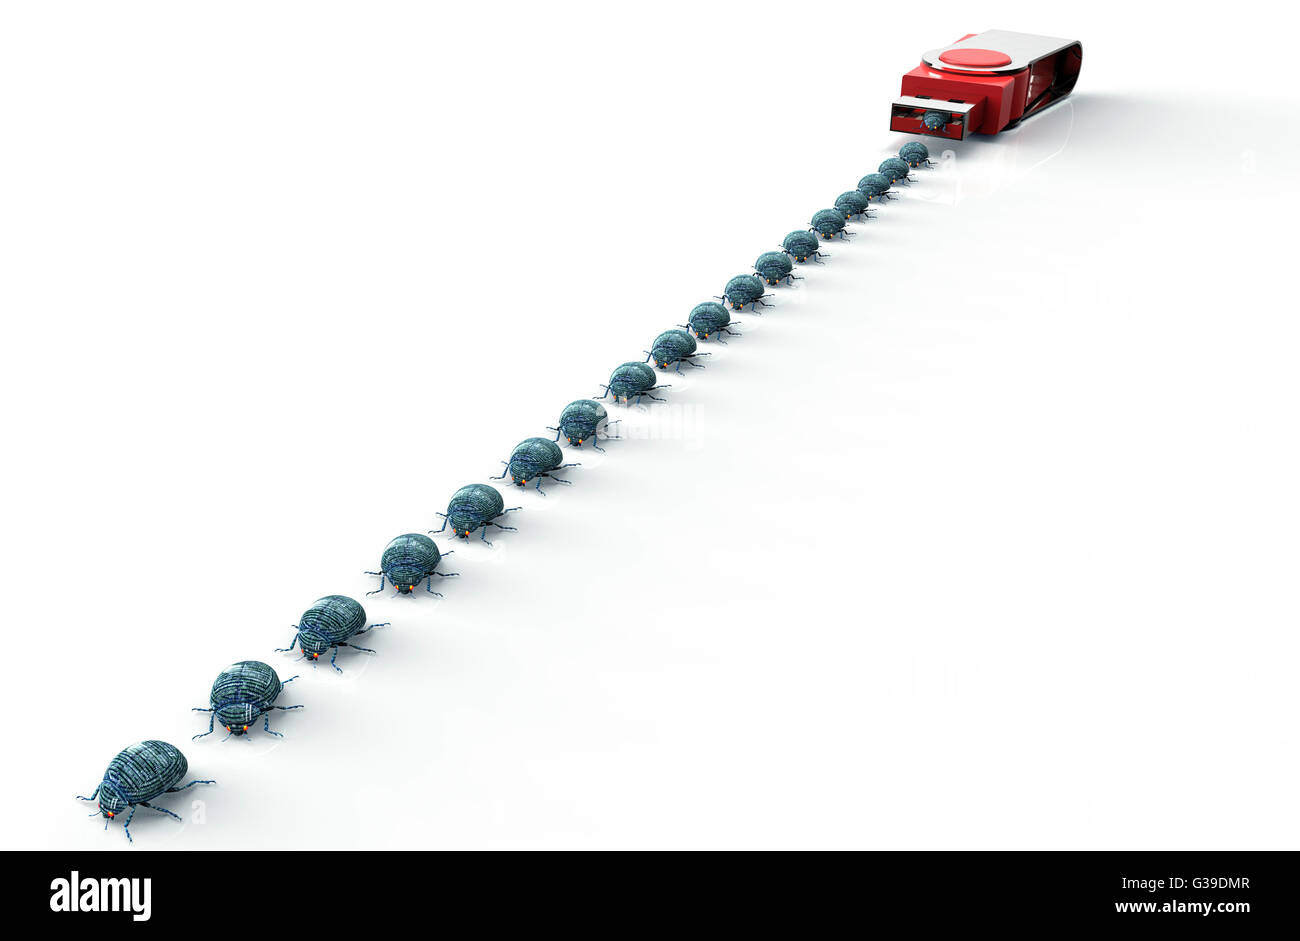 digital safety concept computer bug on usb stick, 3D illustration - Stock Image